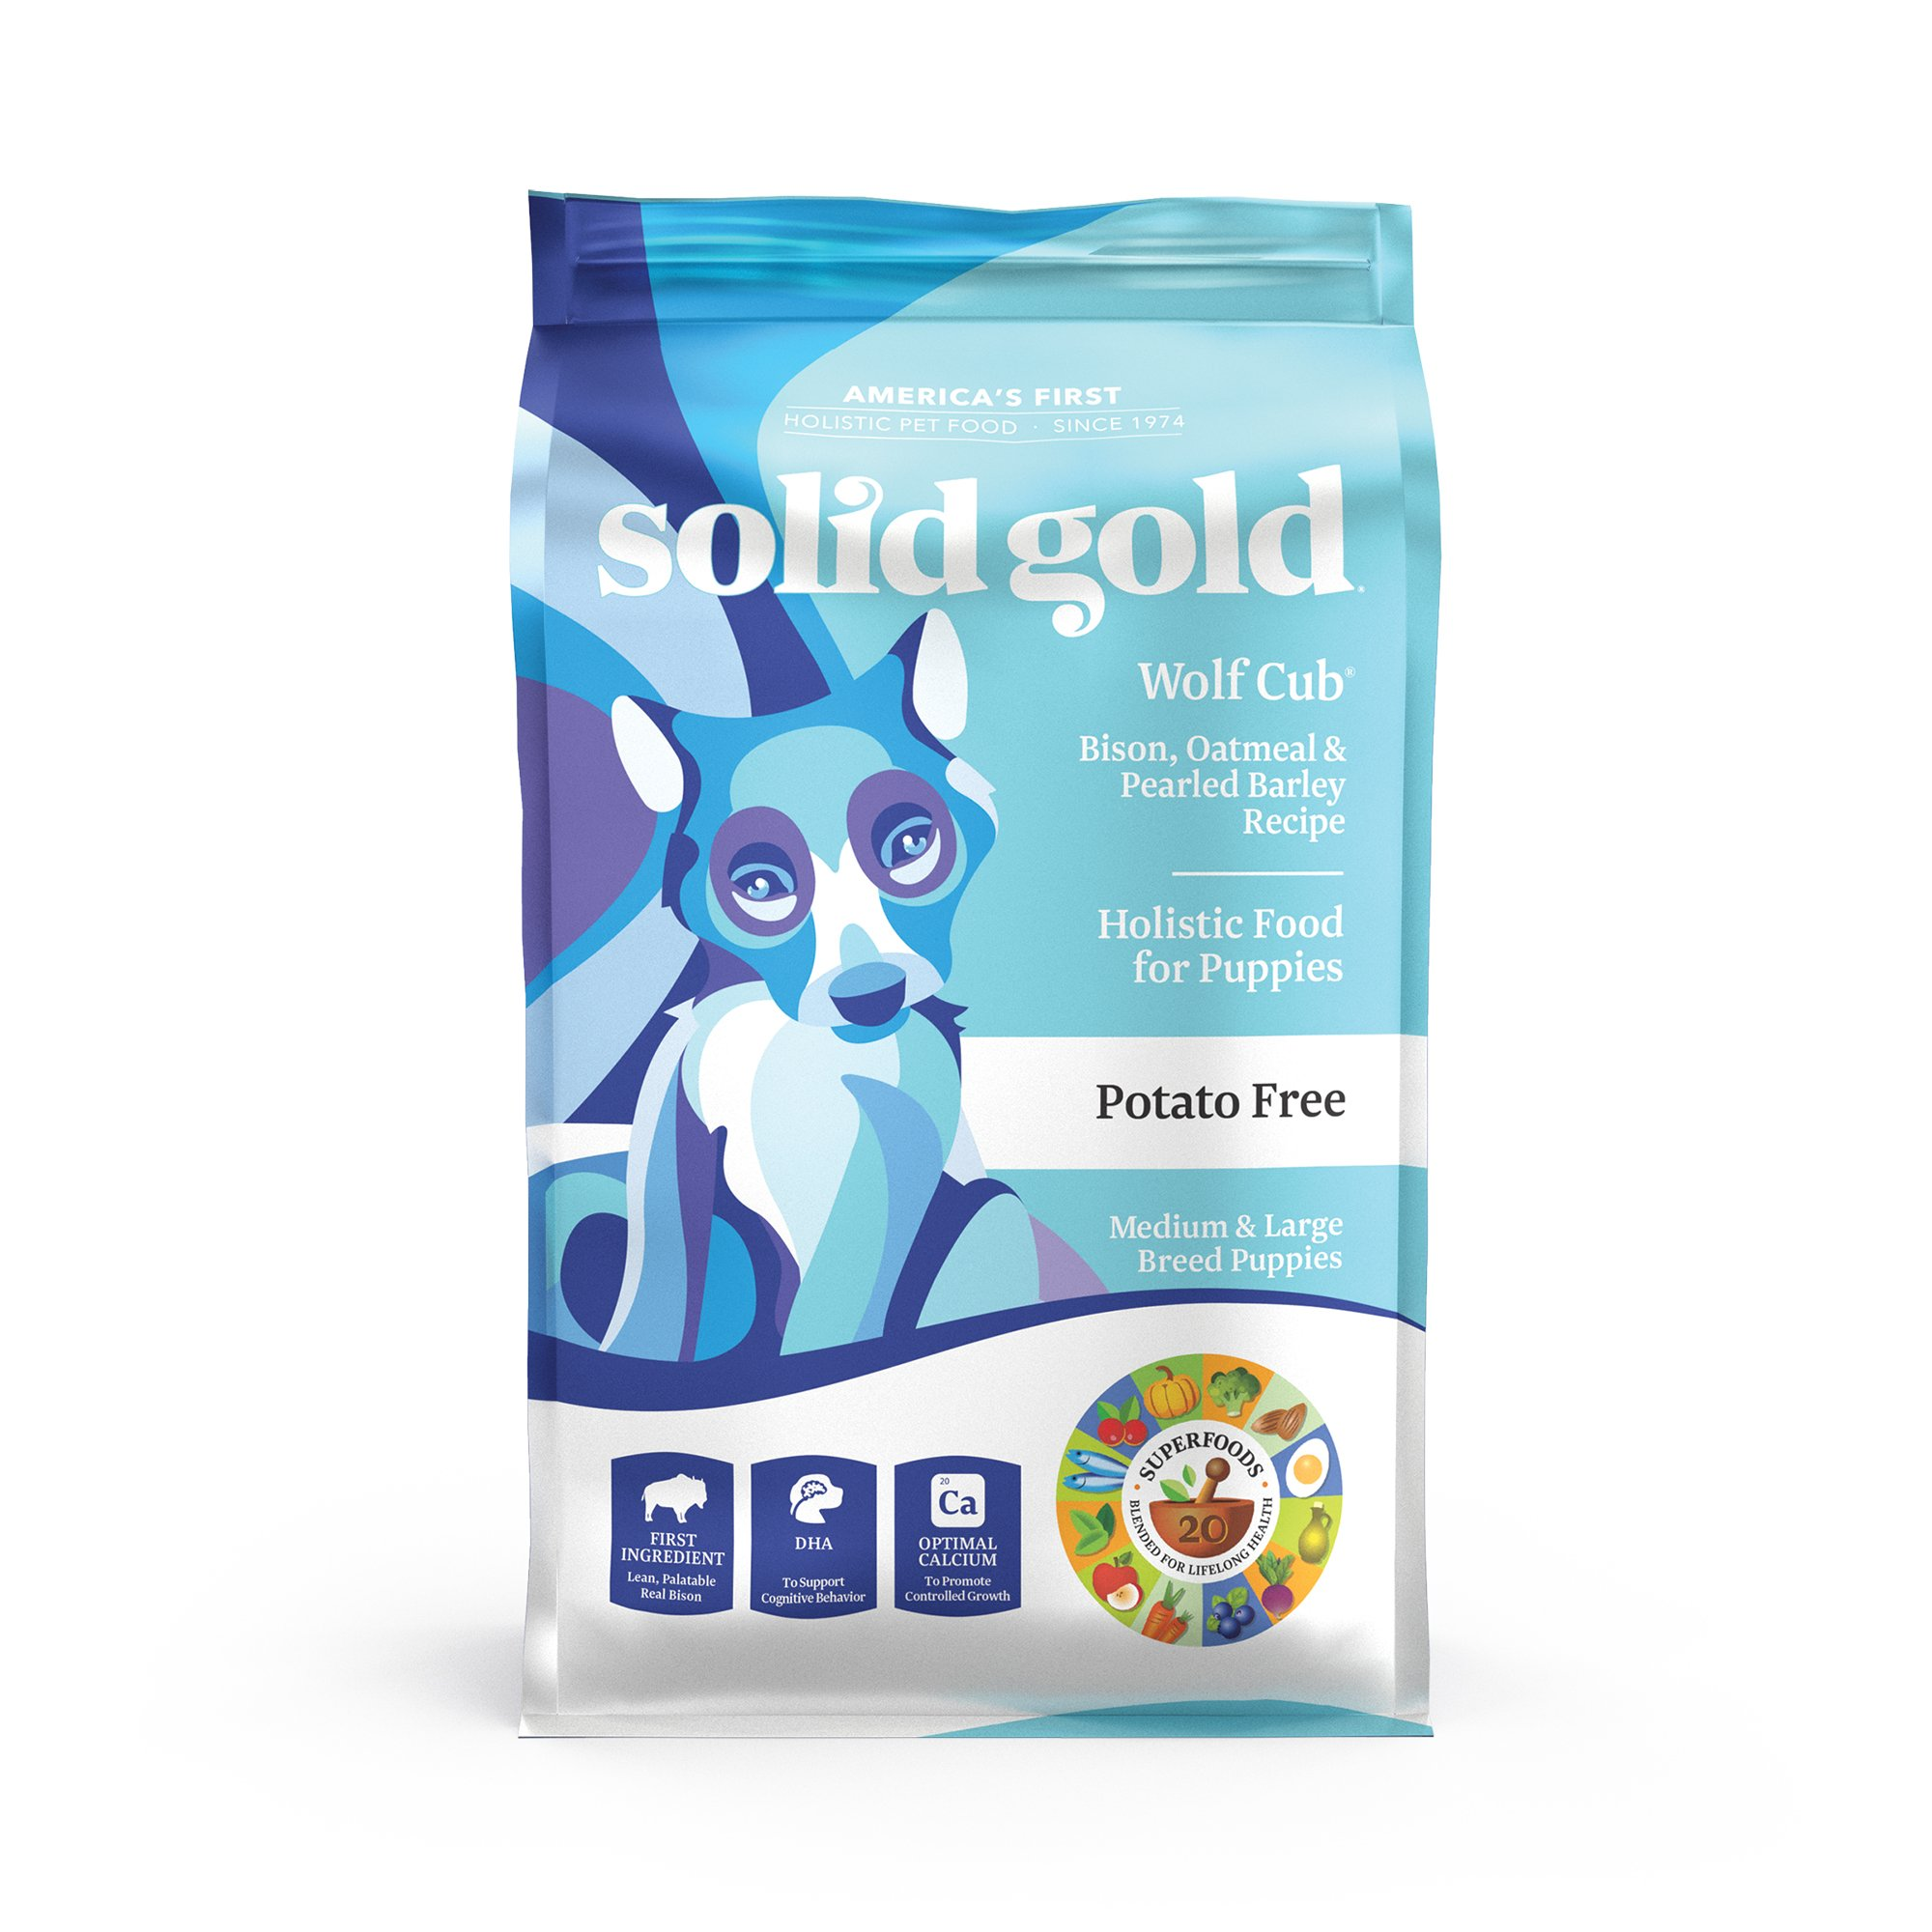 Solid Gold Wolf Cub Bison & Oatmeal Puppy Food